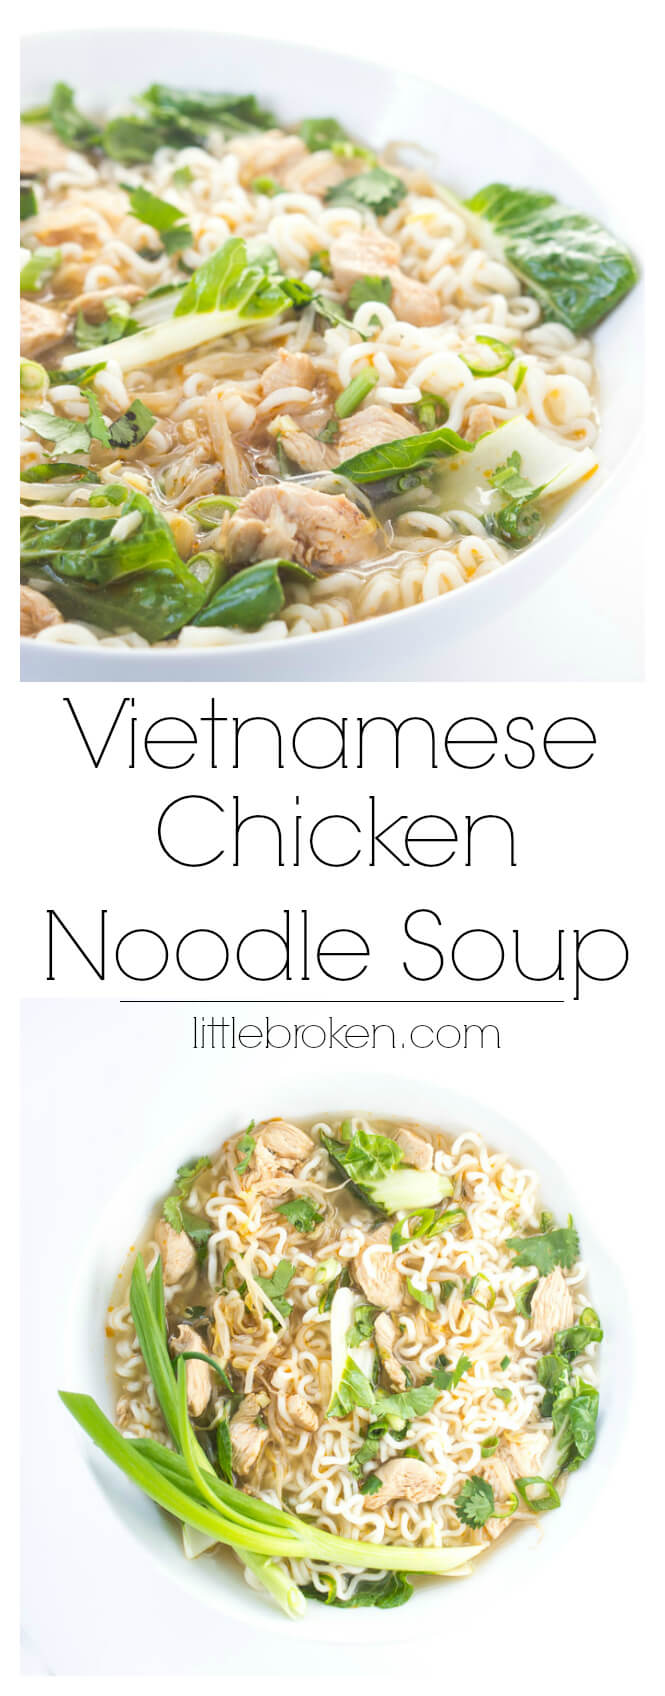 Light broth with bok choy, bean sprouts, and chicken. Served over ramen noodles for a light and satisfying lunch or dinner | littlebroken.com @littlebroken